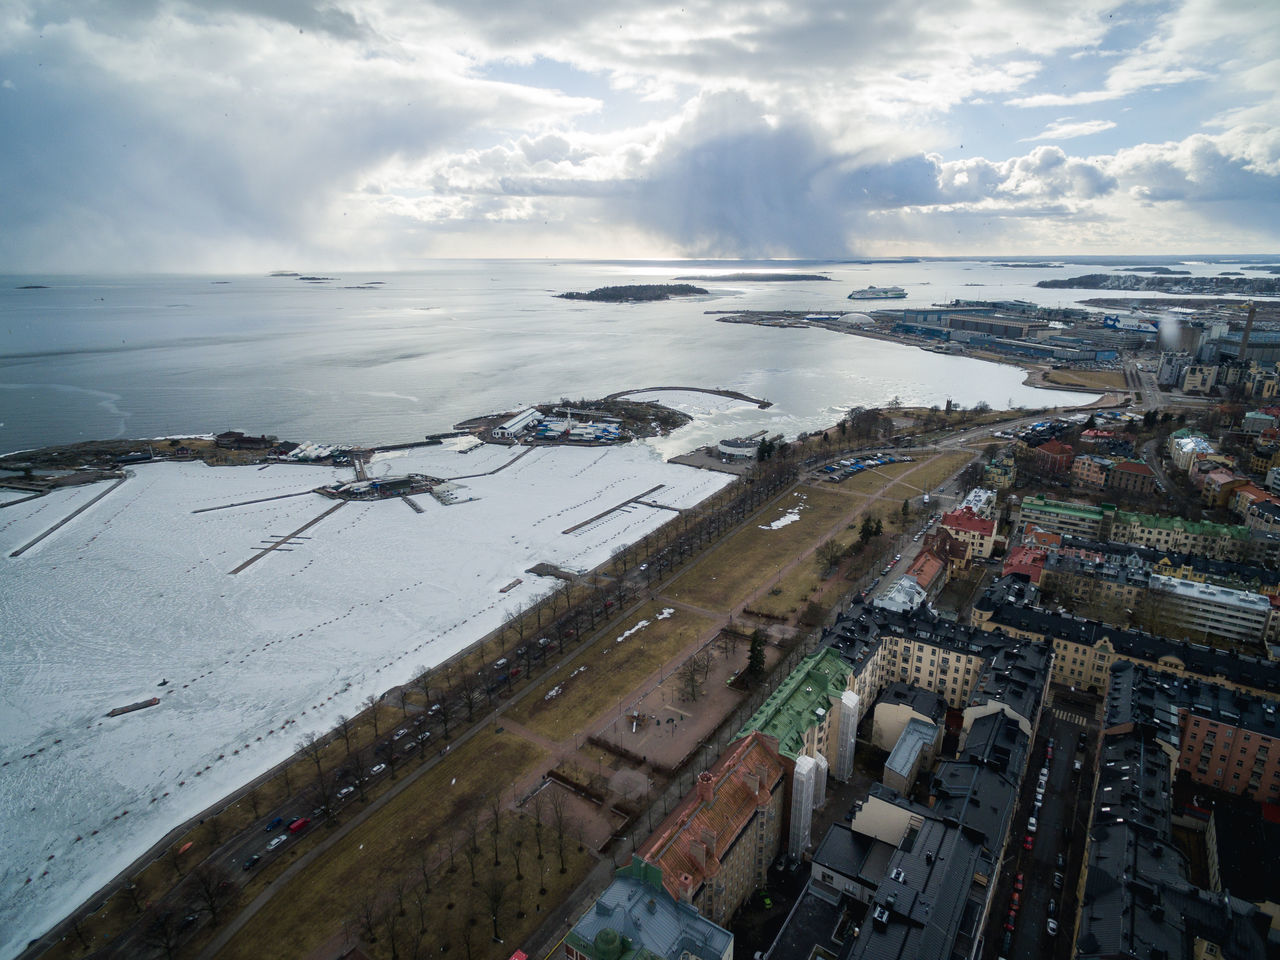 Drone shots from Helsinki on 24th of March 2017. Aerial View Aerospace Industry Air Vehicle Airplane Airport Airport Runway Business Finance And Industry City City City Life Cloud - Sky Dji Drone  Flying High Helsinki House Lights Living Outdoors Sea Spring Top Perspective Top View Transportation Winter